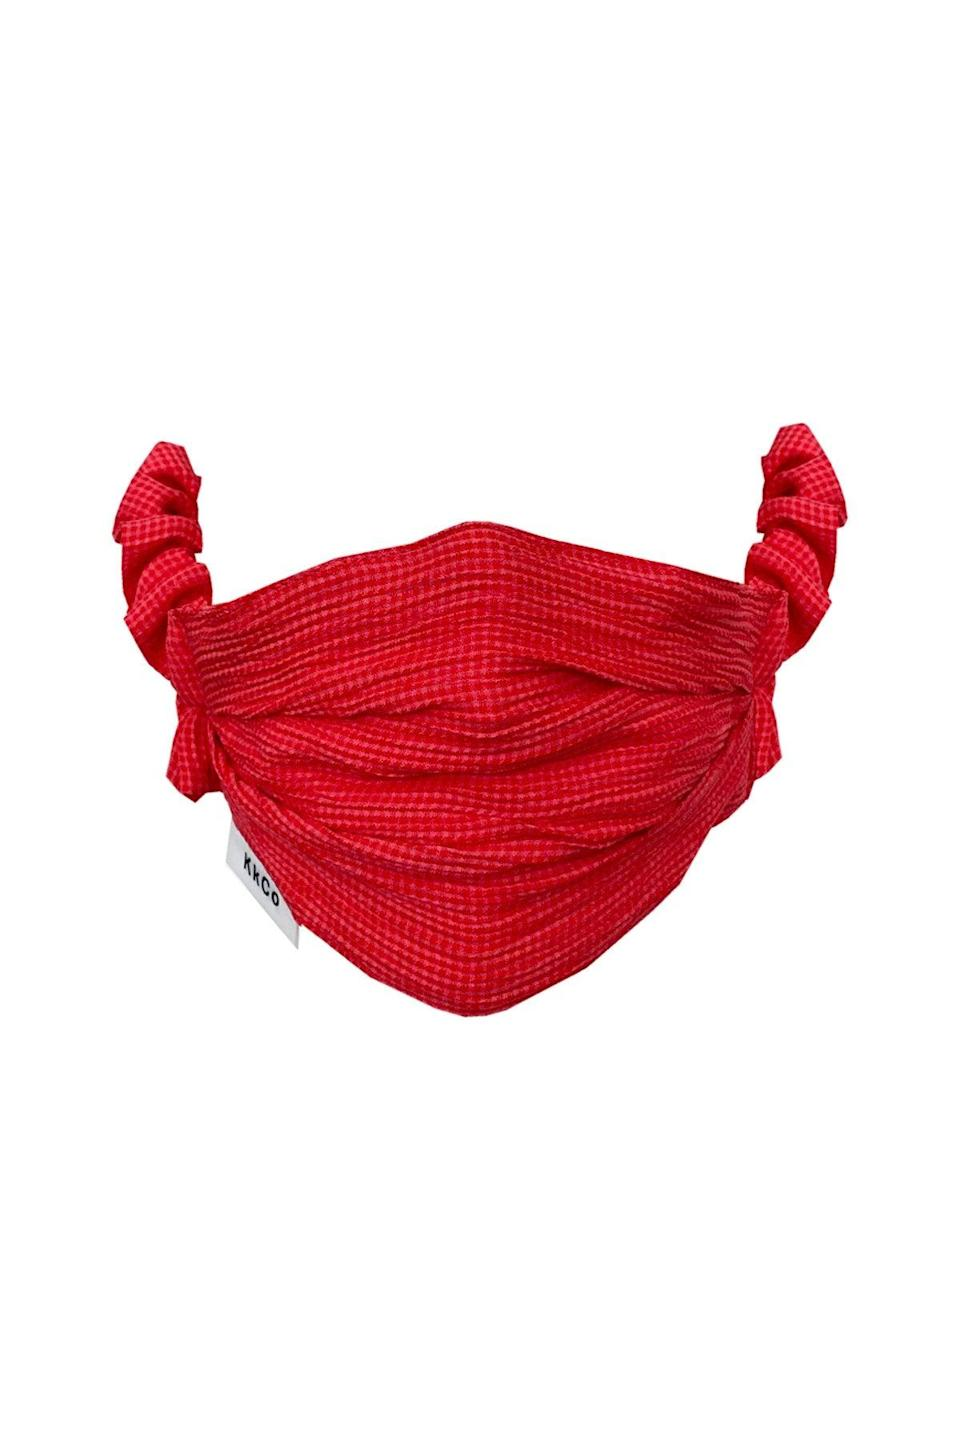 "<br> <br> <strong>KKCo</strong> Face Mask in Red Check, $, available at <a href=""https://go.skimresources.com/?id=30283X879131&url=https%3A%2F%2Fwww.kkcostudio.com%2Fproducts%2Fface-mask-in-red-check"" rel=""nofollow noopener"" target=""_blank"" data-ylk=""slk:KKCo"" class=""link rapid-noclick-resp"">KKCo</a>"